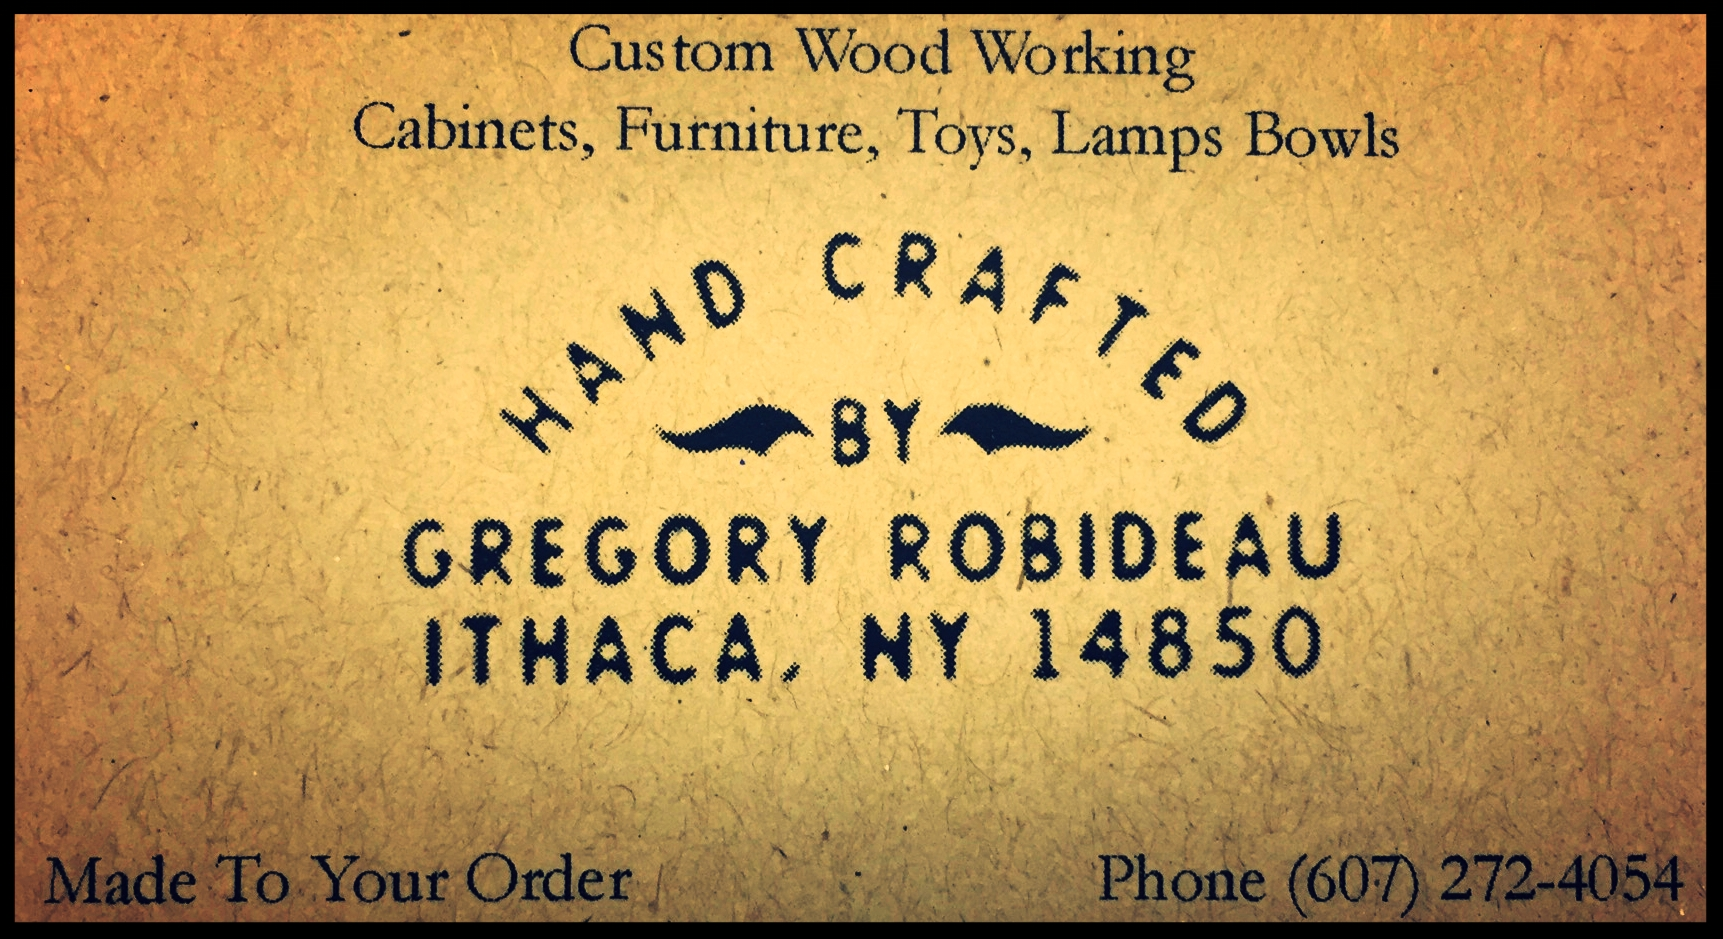 Hand Crafted byGregory Robideau - Greg is my father, mentor, and forever the reason this thing we call woodworking is in my blood. I couldn't be happier to have his items for sale here at the Makery Market! Check out his items below!